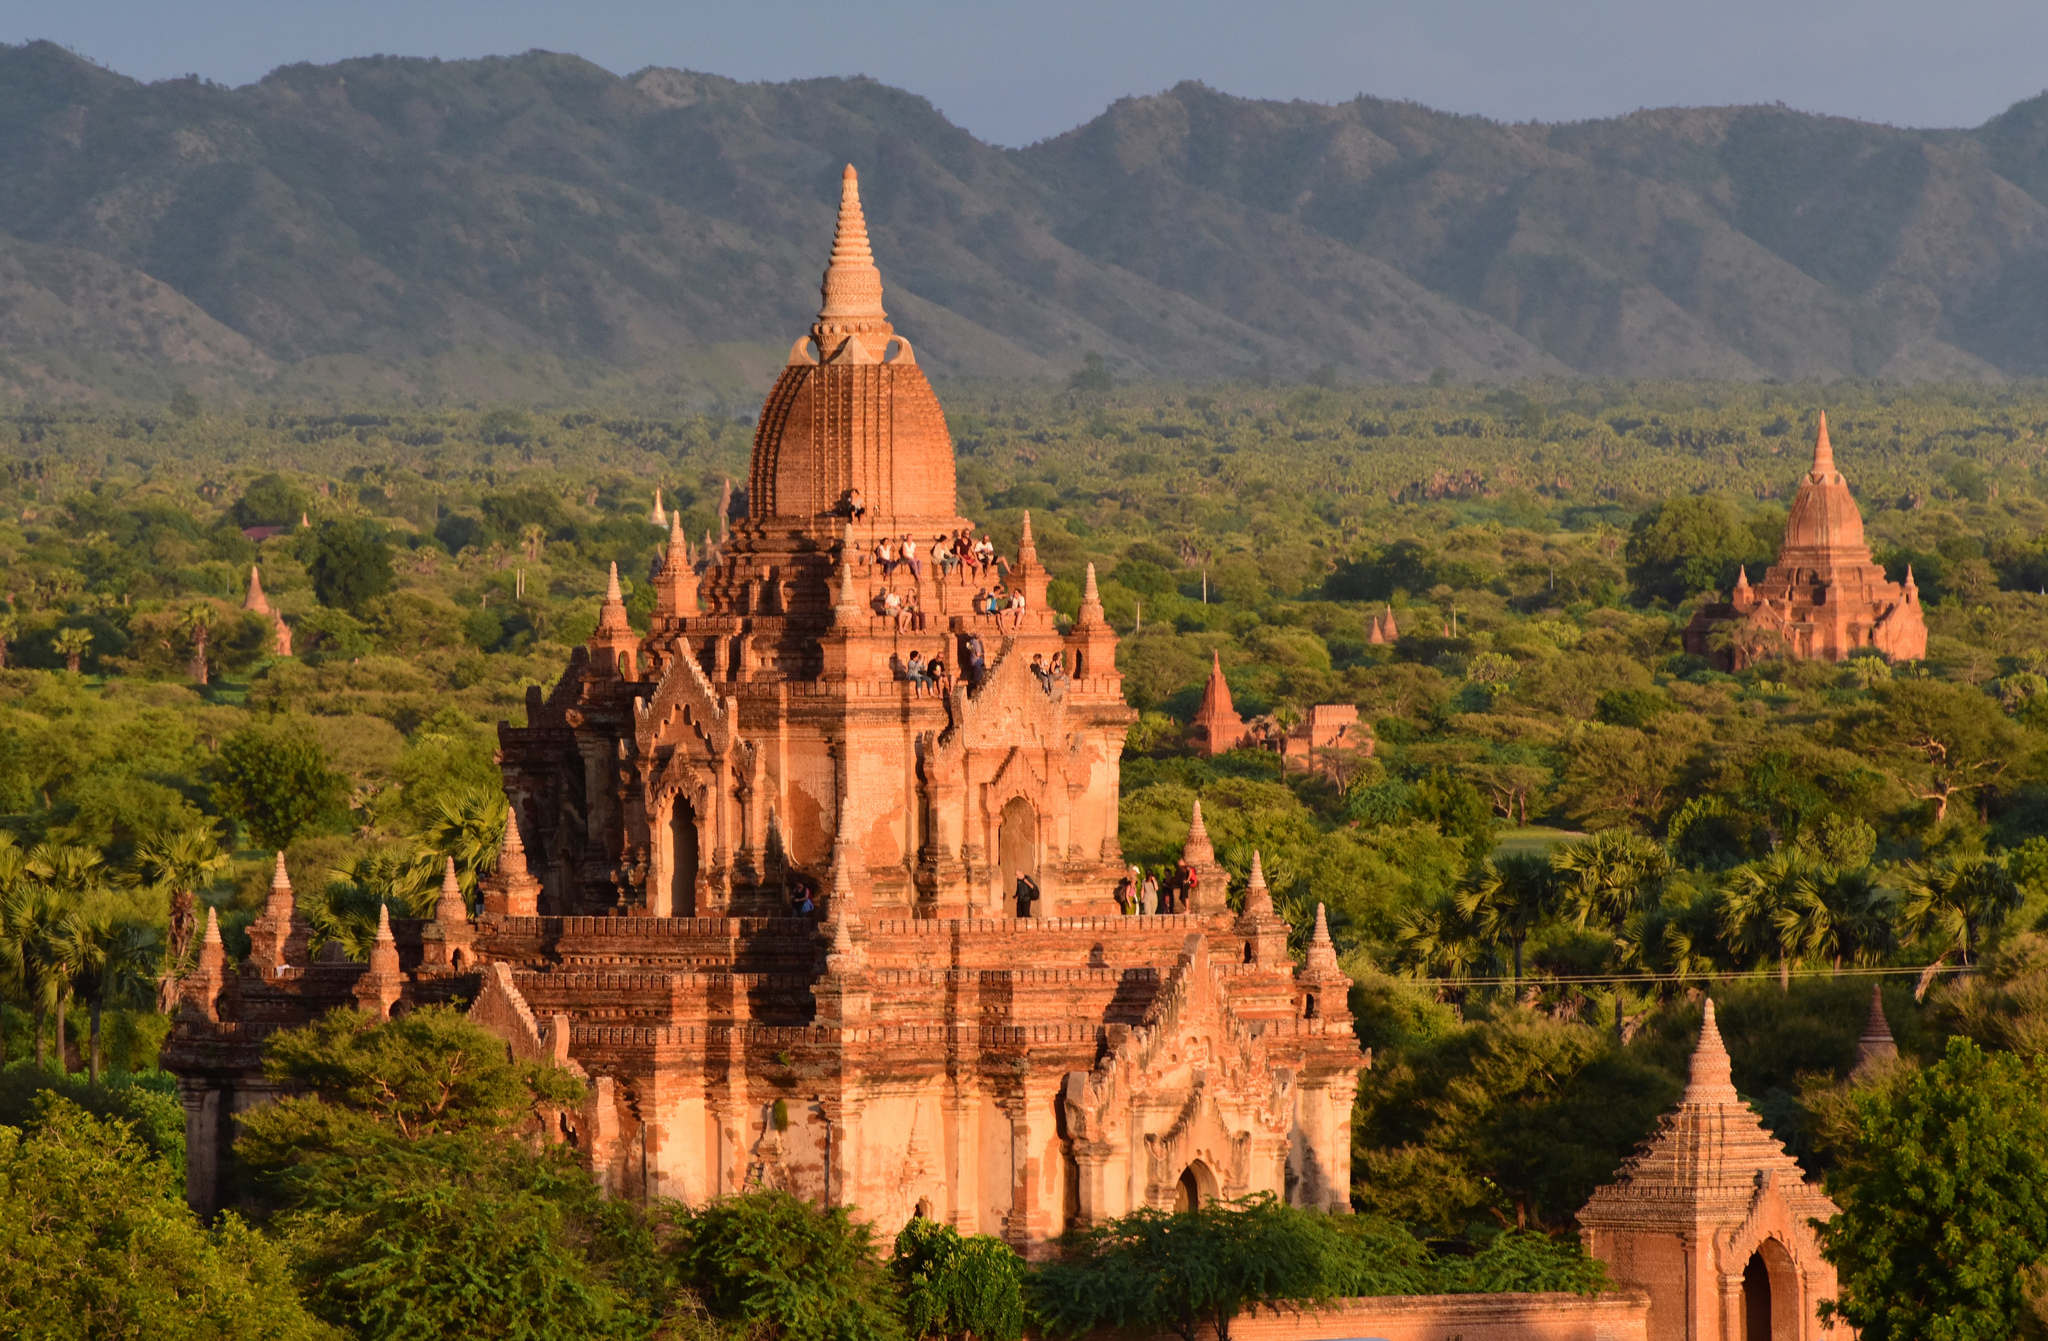 Tourists will soon be forbidden from climbing pagodas like this in Myanmar.